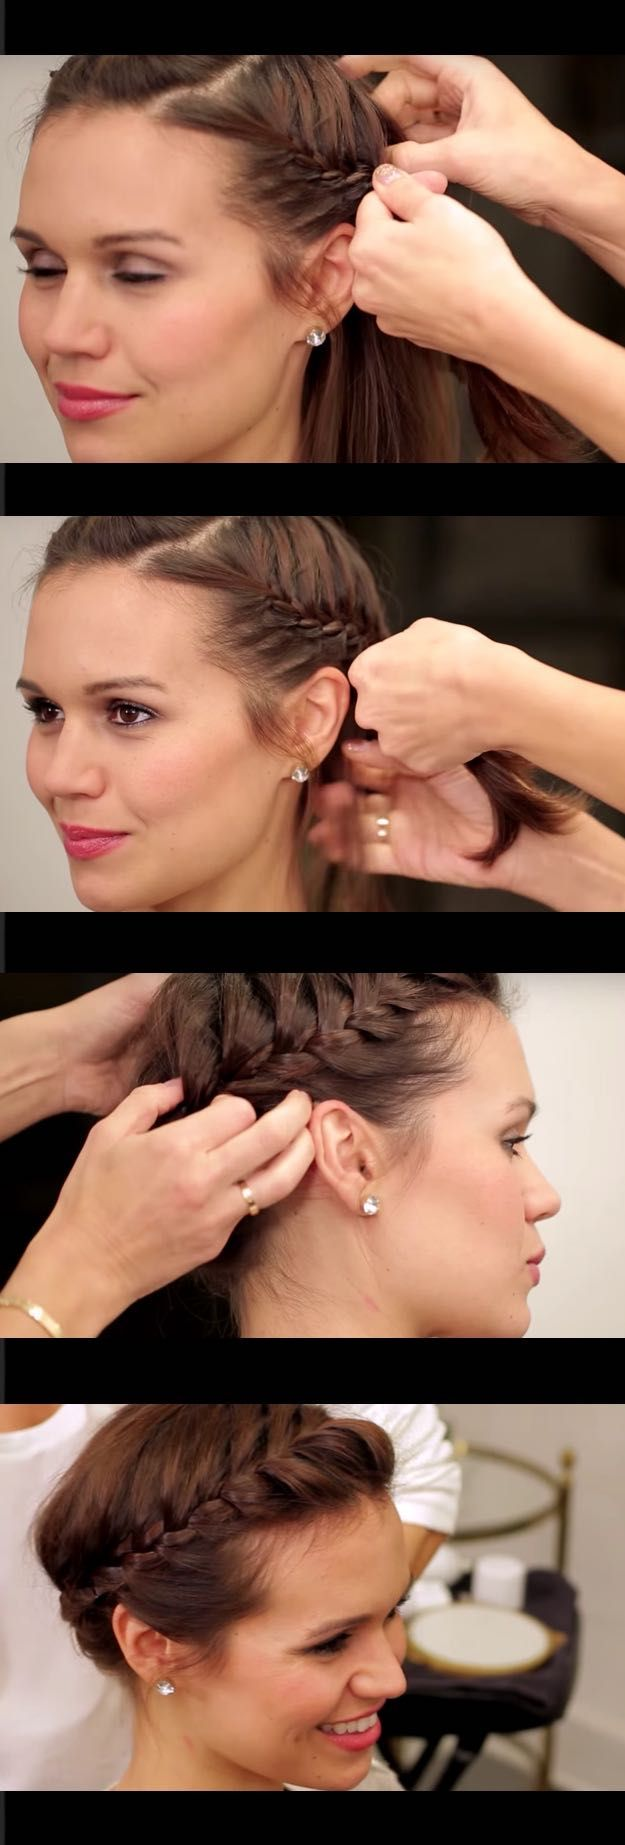 Best Hair Braiding Tutorials - The Perfect Halo Braid for Short Hair NewBeauty T...